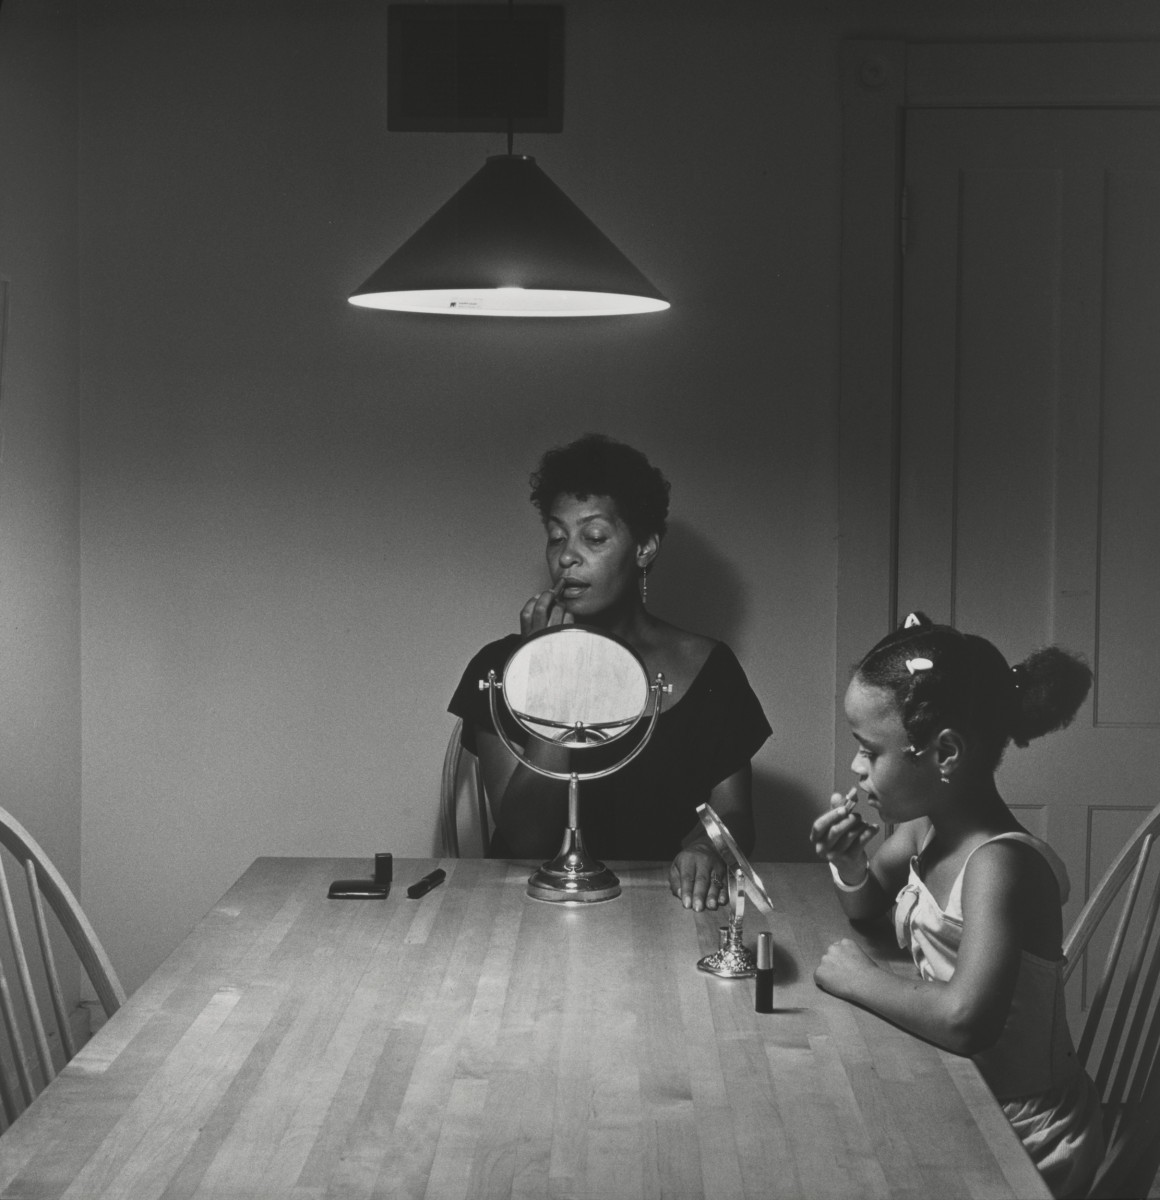 Carrie Mae Weems and a young girl, both at a kitchen table, putting on lipstick